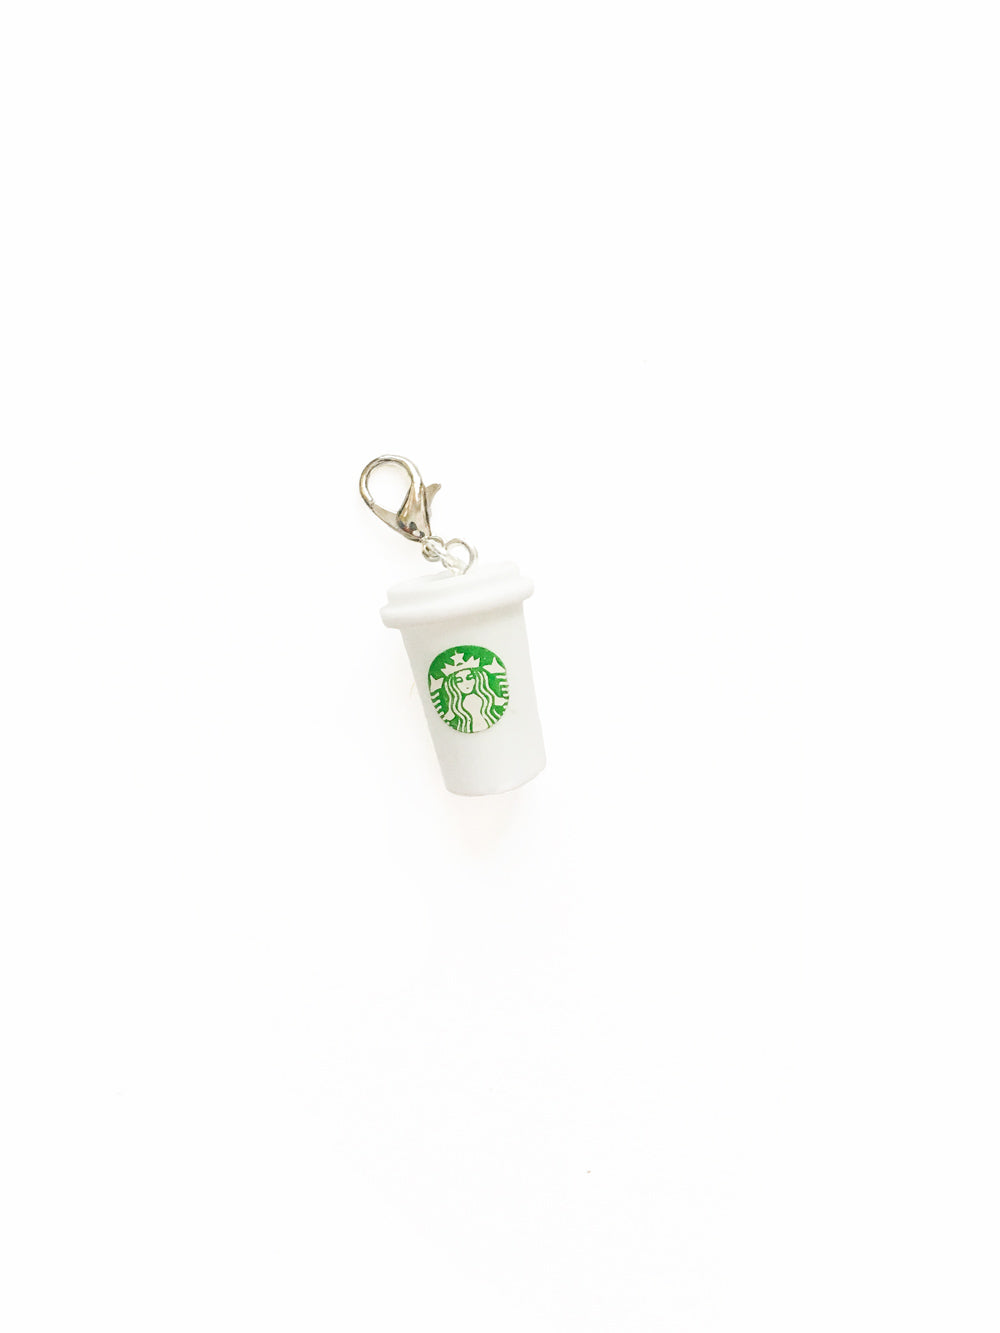 Black Starbucks Cup Zipper Pull Charm